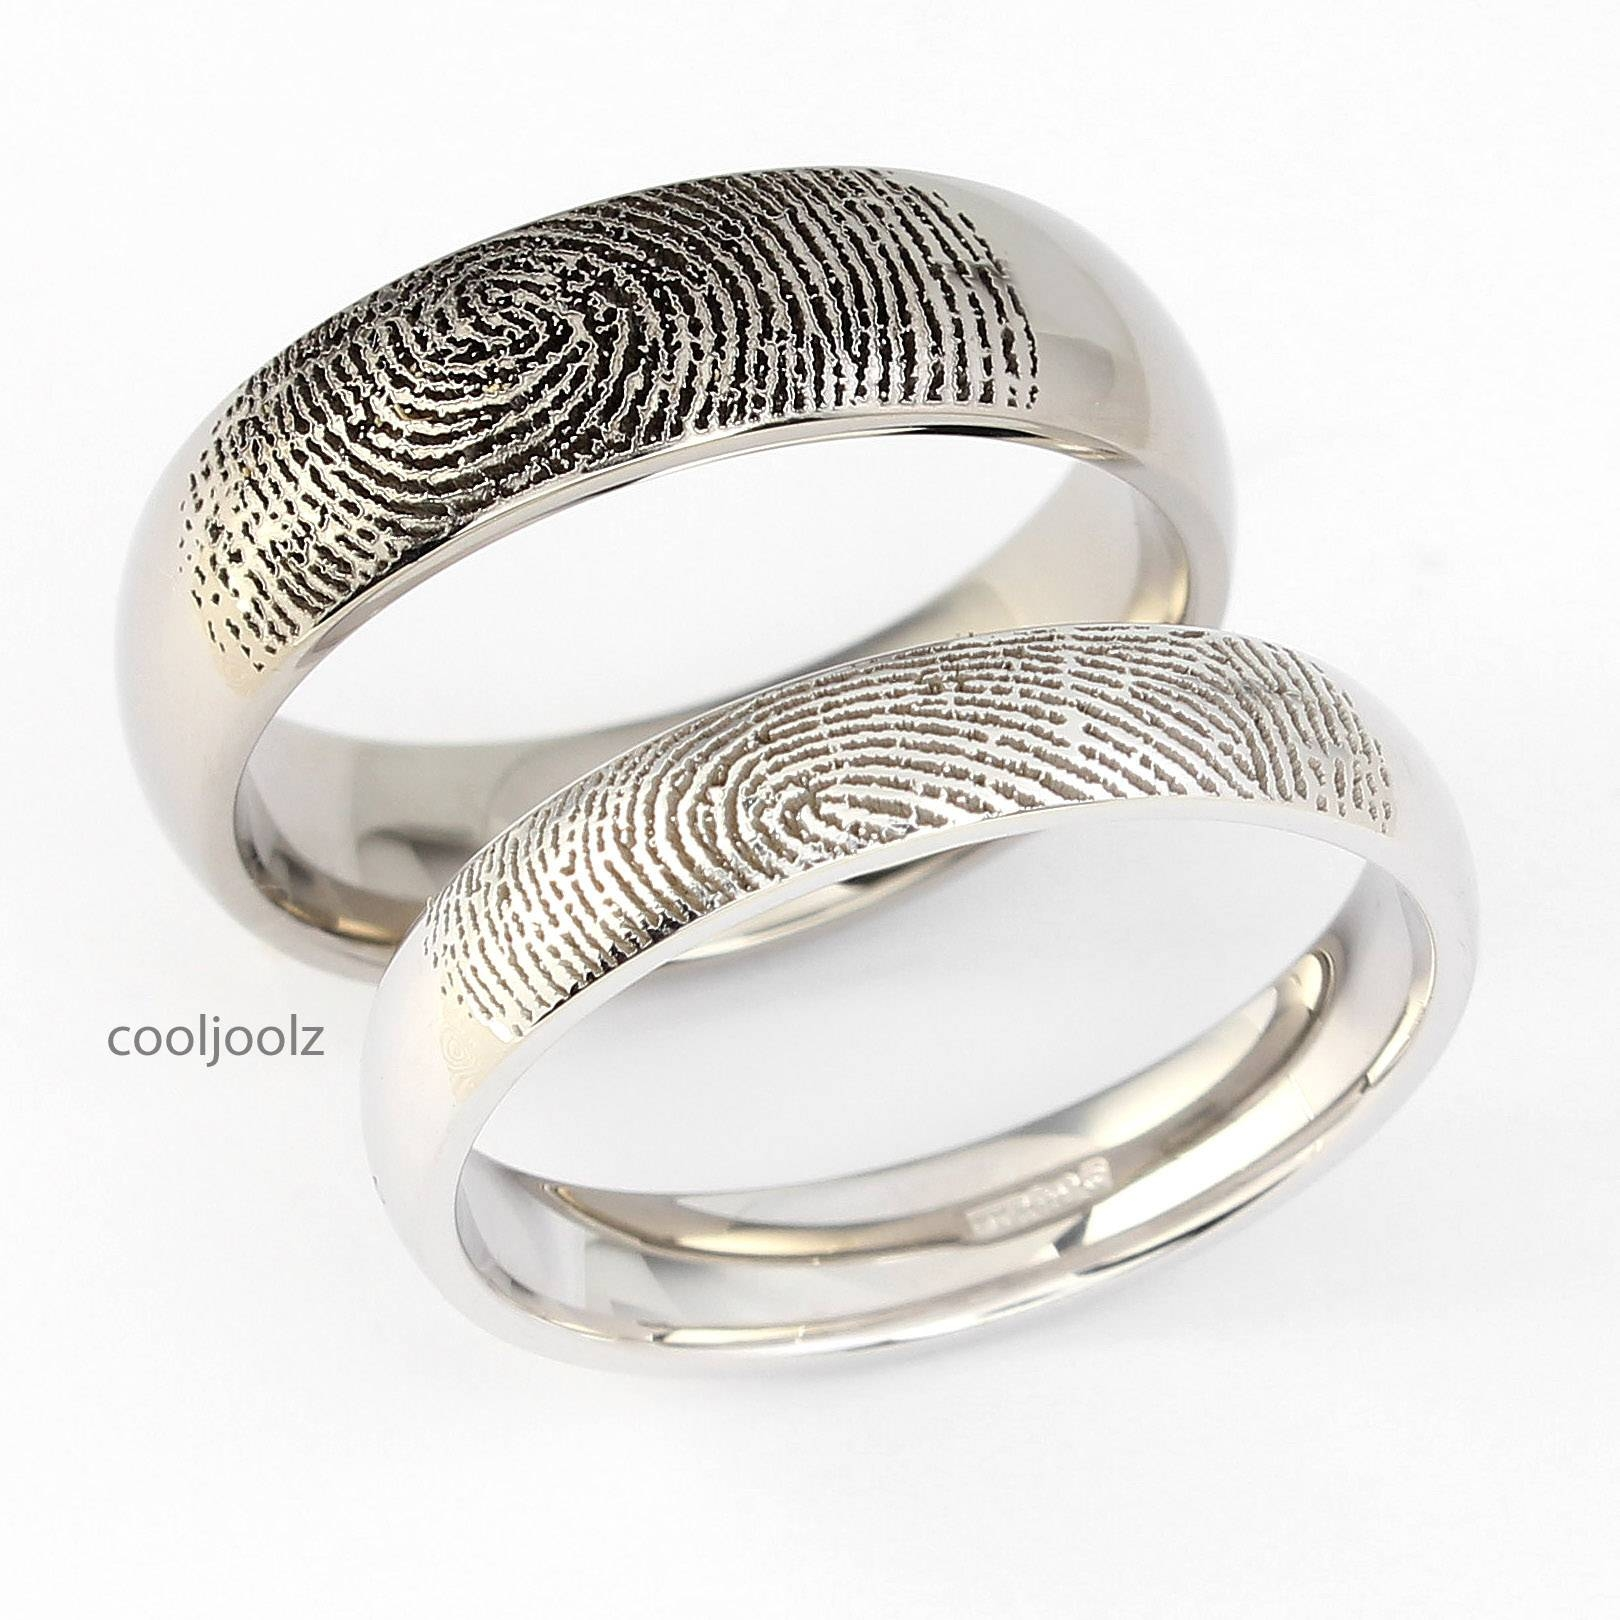 are the with band and for mmfhntnlmtm great titanium customized fingerprint dome jewelry from personalised set weddings rose choice any of wedding itm your engraved shape becoming gold fast occasion rings they